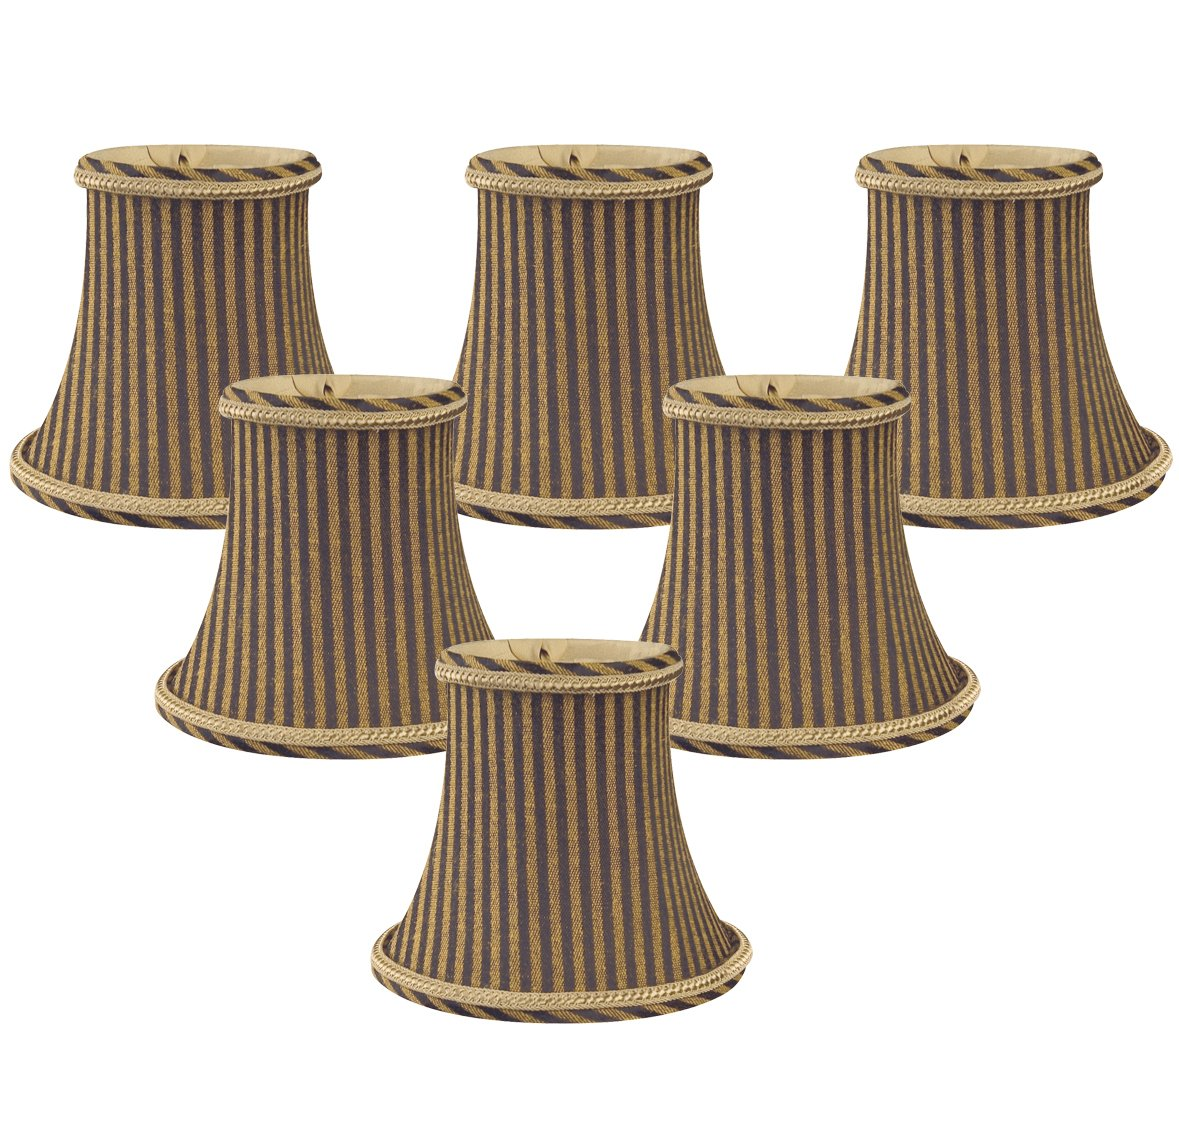 Royal Designs 5'' Black/Antique Gold Striped Chandelier Lamp Shade, Set of 6, 3 x 5 x 4.5 (CS-608AGL/BR-6)